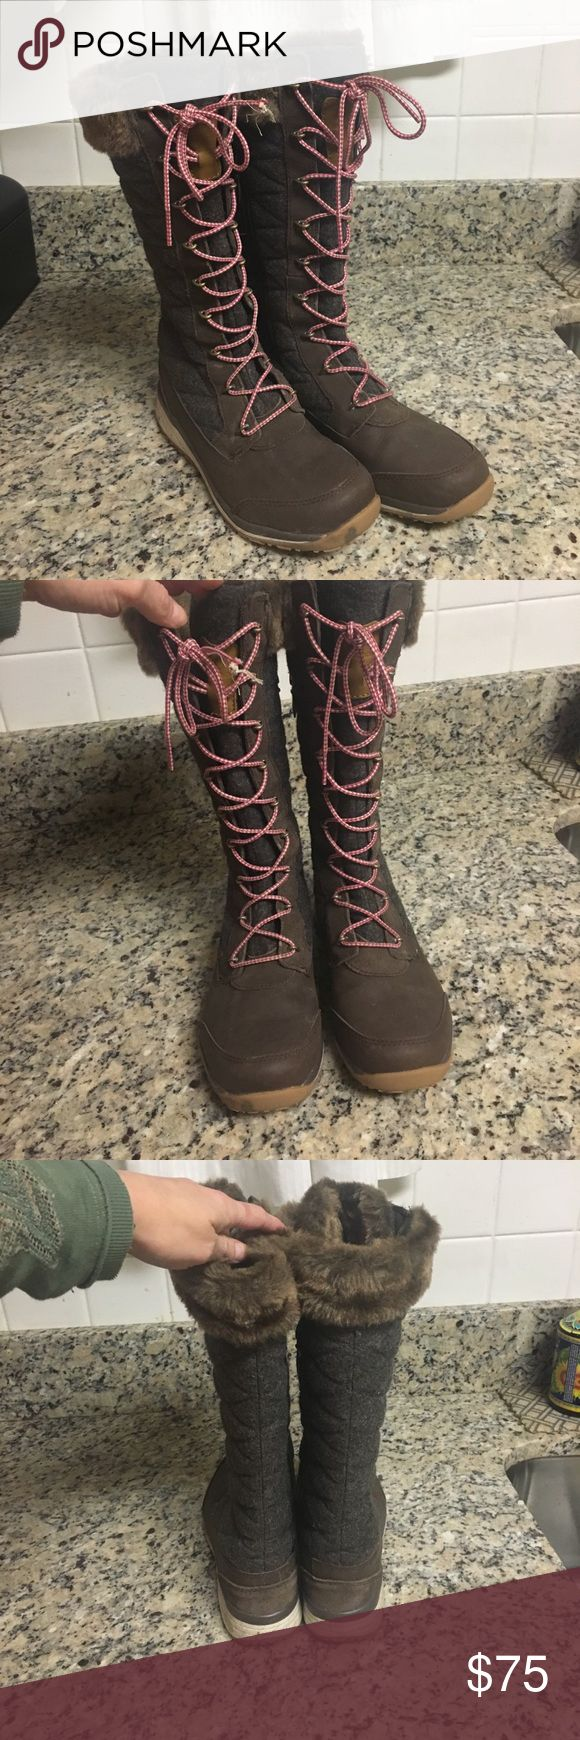 Salomon Hime Winter Boots These boots are like wearing really tall sneakers. Extremely comfortable and warm. Only worn for one season. They are brown with red and white laces. Excellent condition. Size 7. Salomon Shoes Winter & Rain Boots